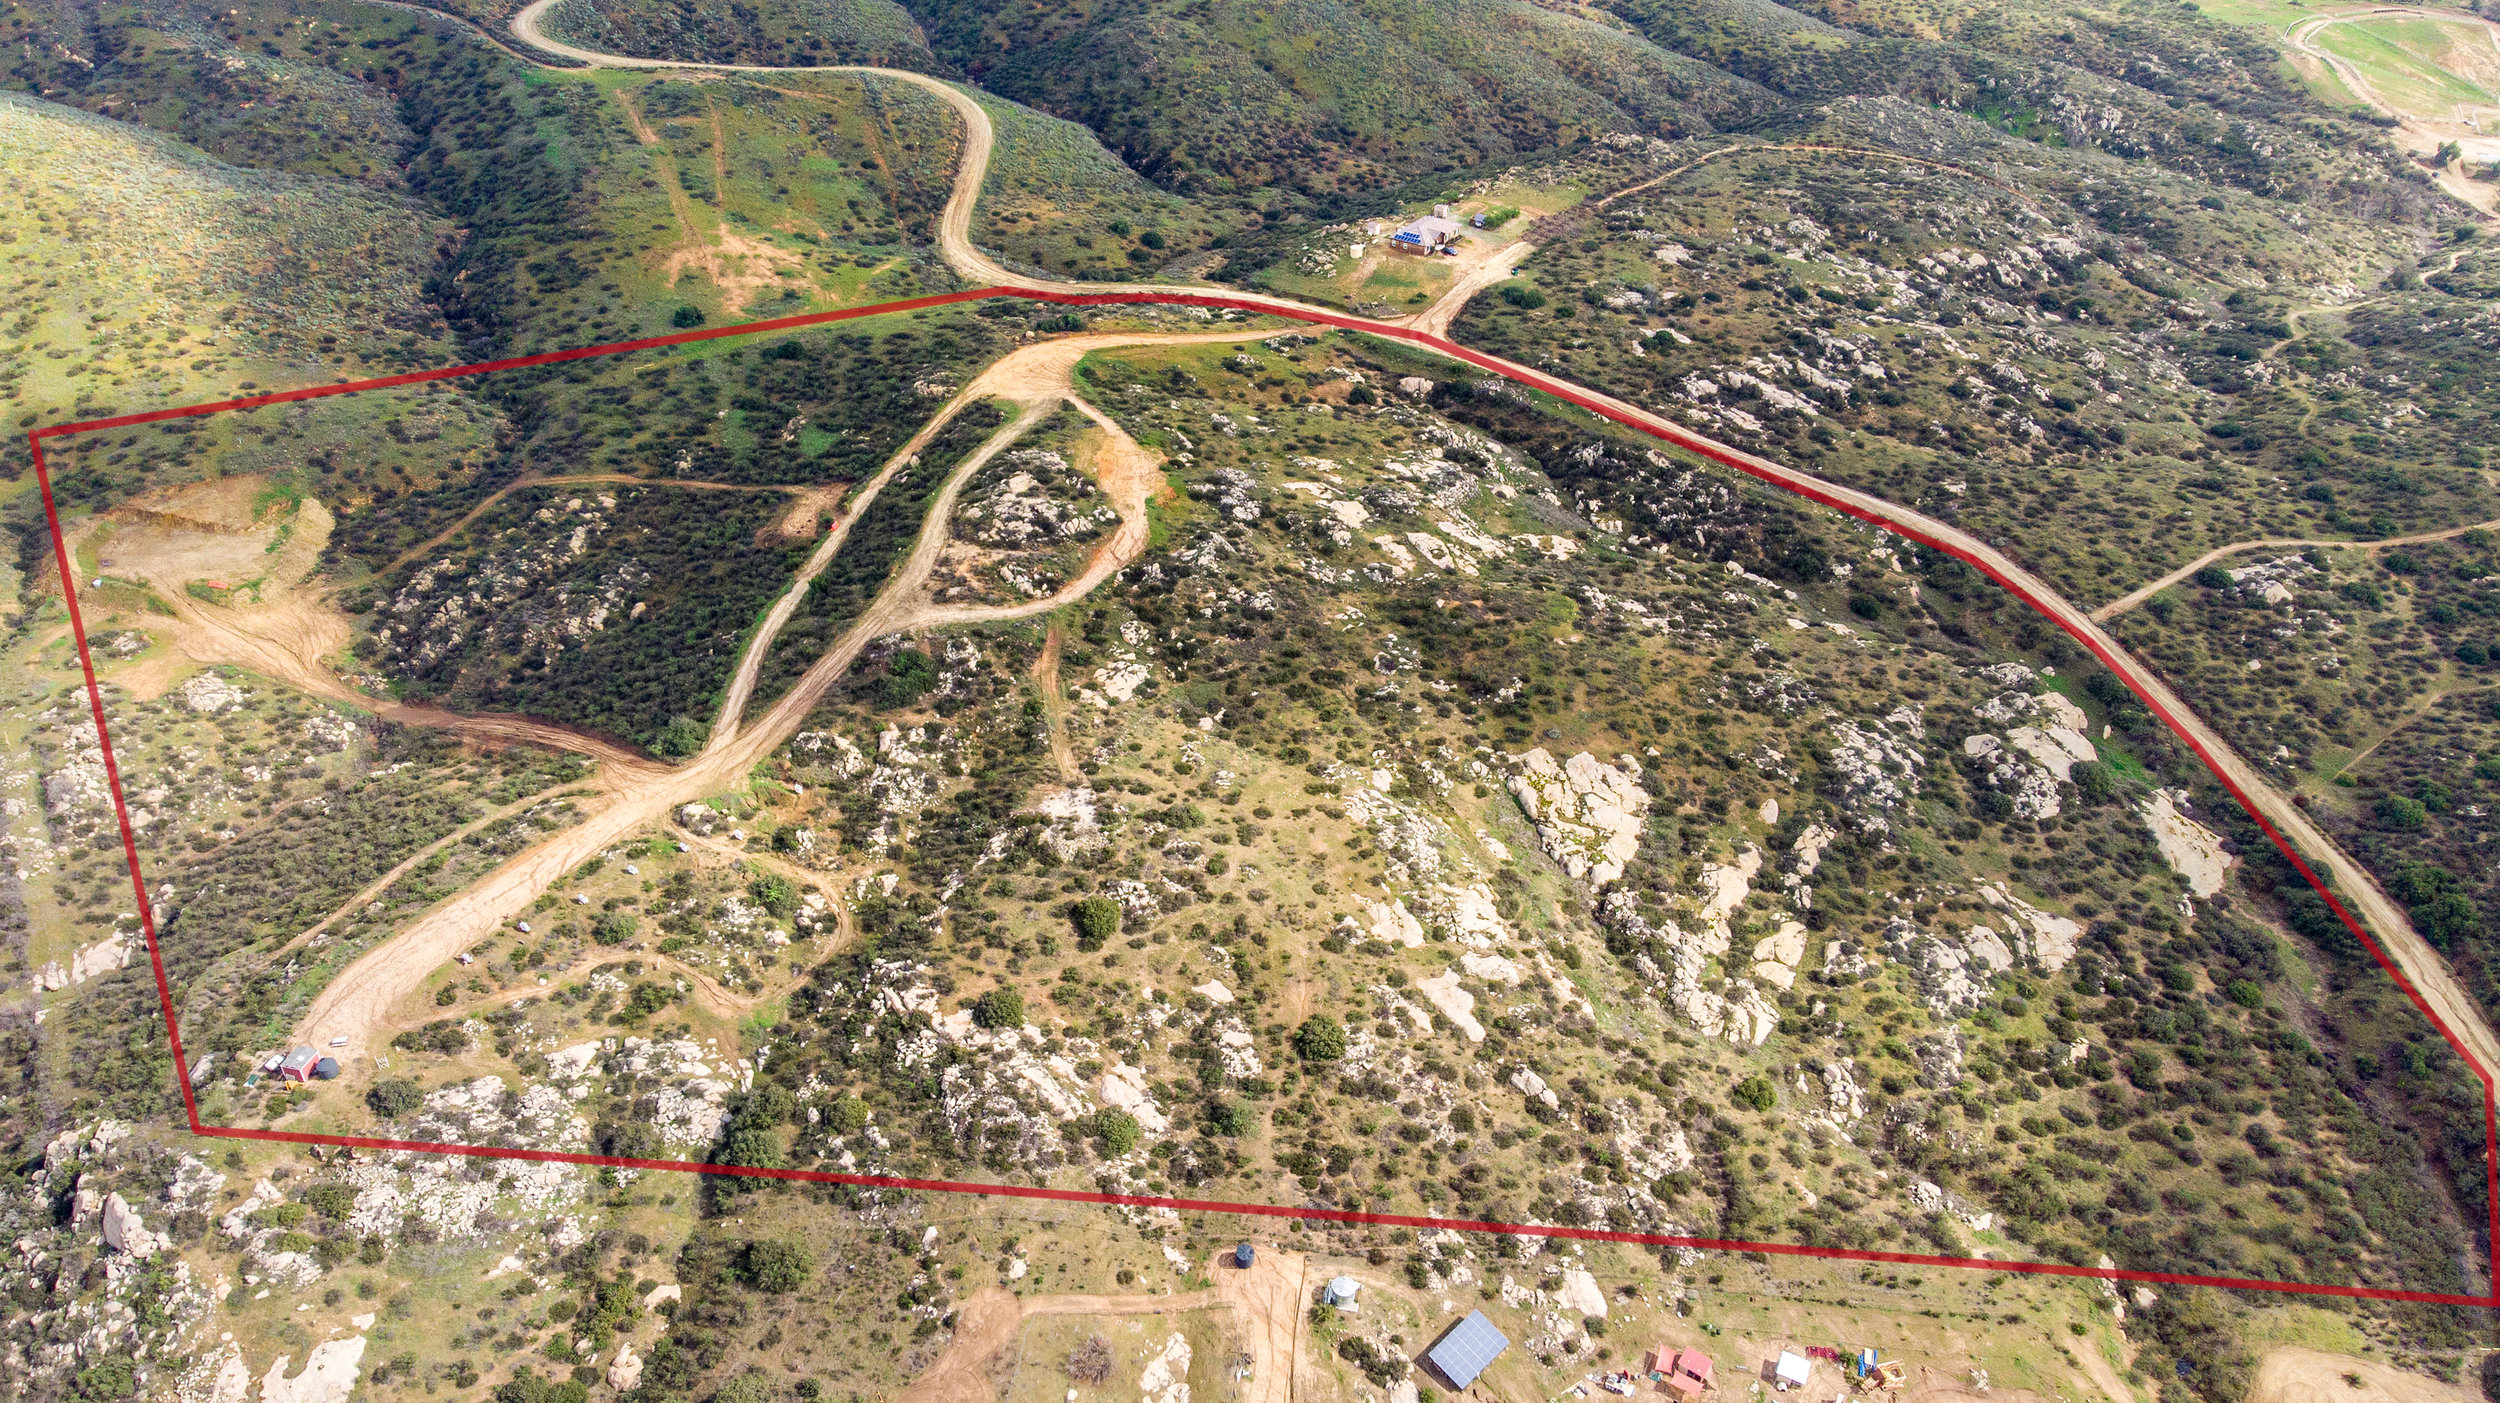 001_Aerial View with Property Lines.jpg